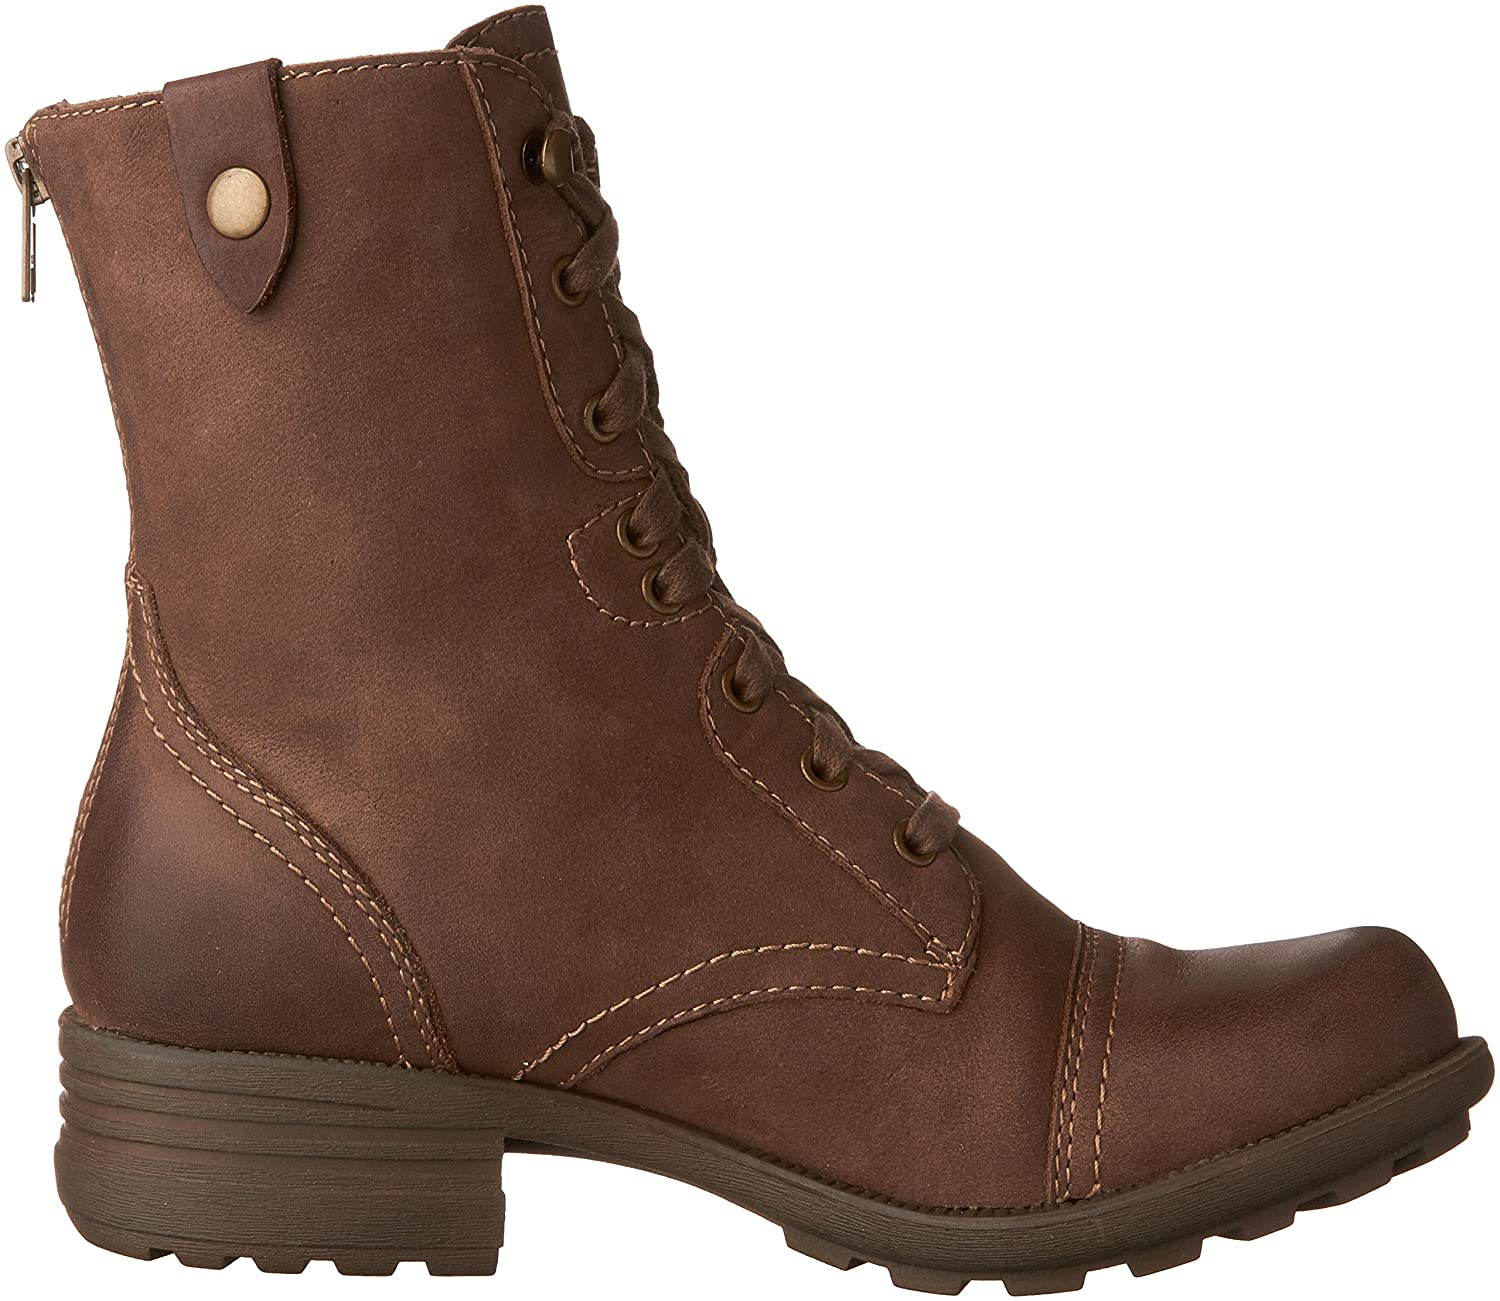 Cobb Hill Women's 9 Bethany Boot B007MY9DMS 9 Women's B(M) US|Stone 8b9d32